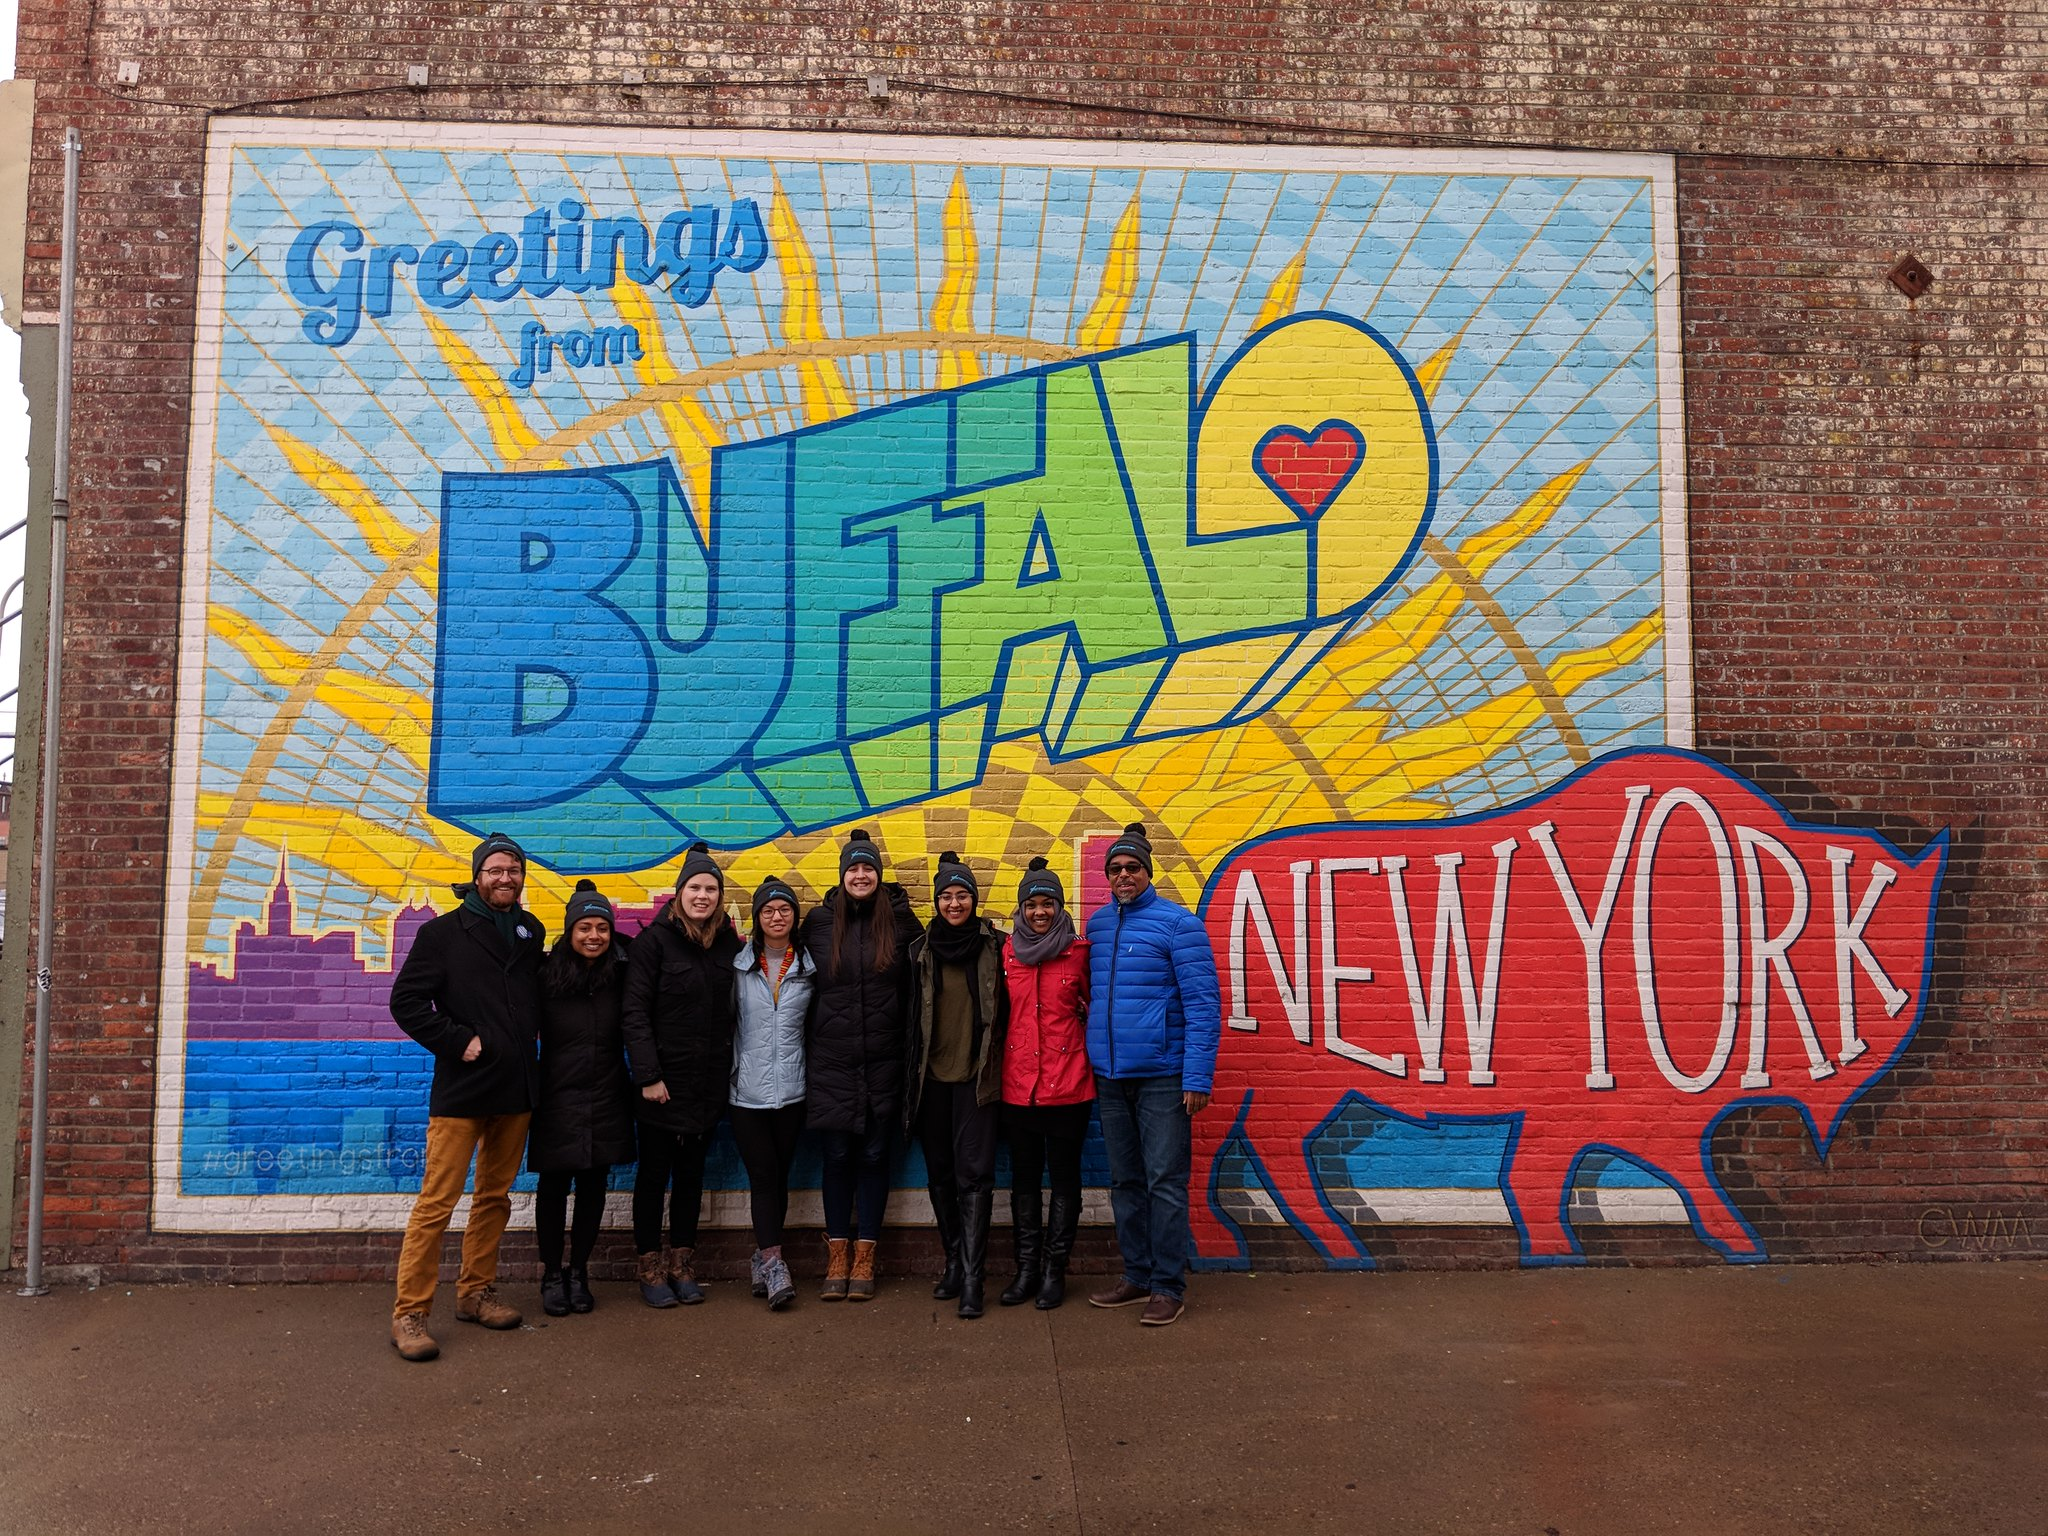 A large colourful mural reading Greetings from Buffalo New York; a group posing in front of the mural